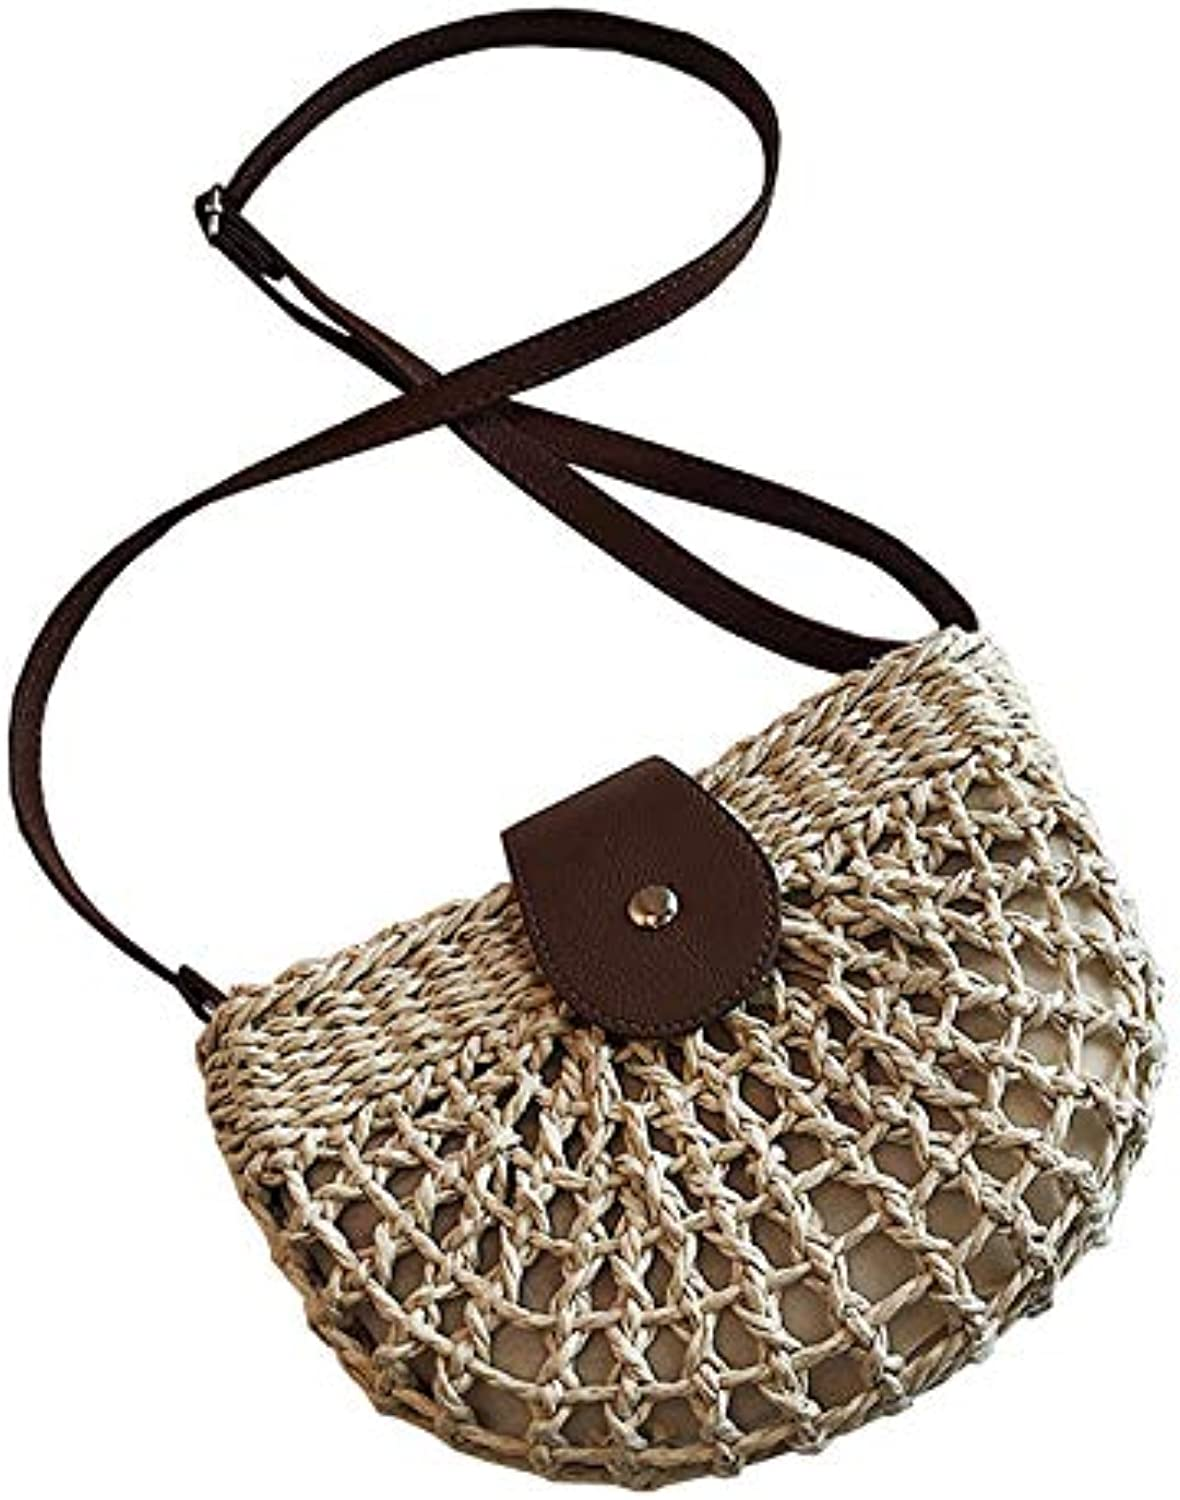 Crossbody Bag Straw Bag Shoulder Bag(B;)